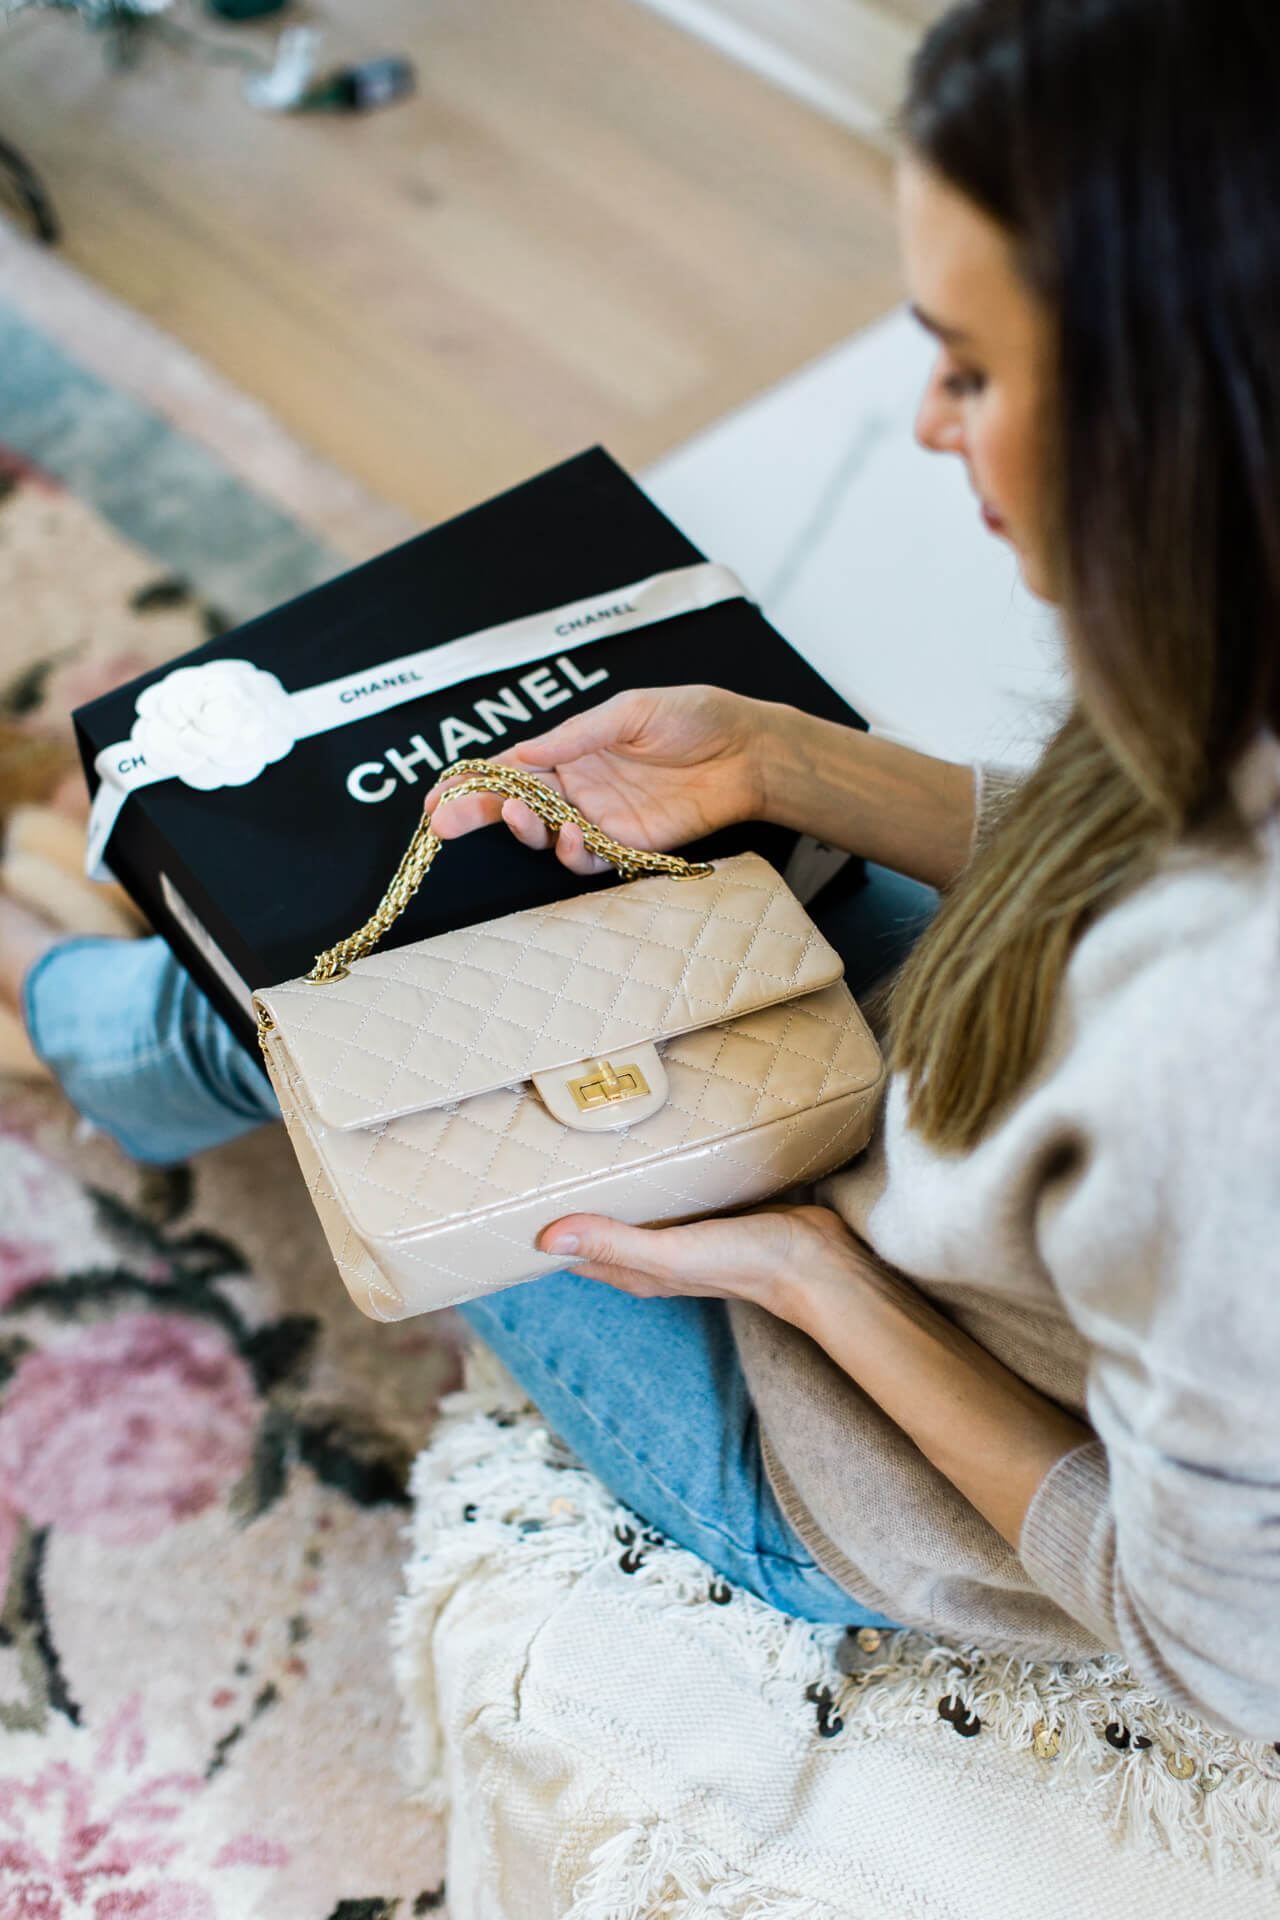 I found my Chanel dream bag for a great price used! - M Loves M @marmar